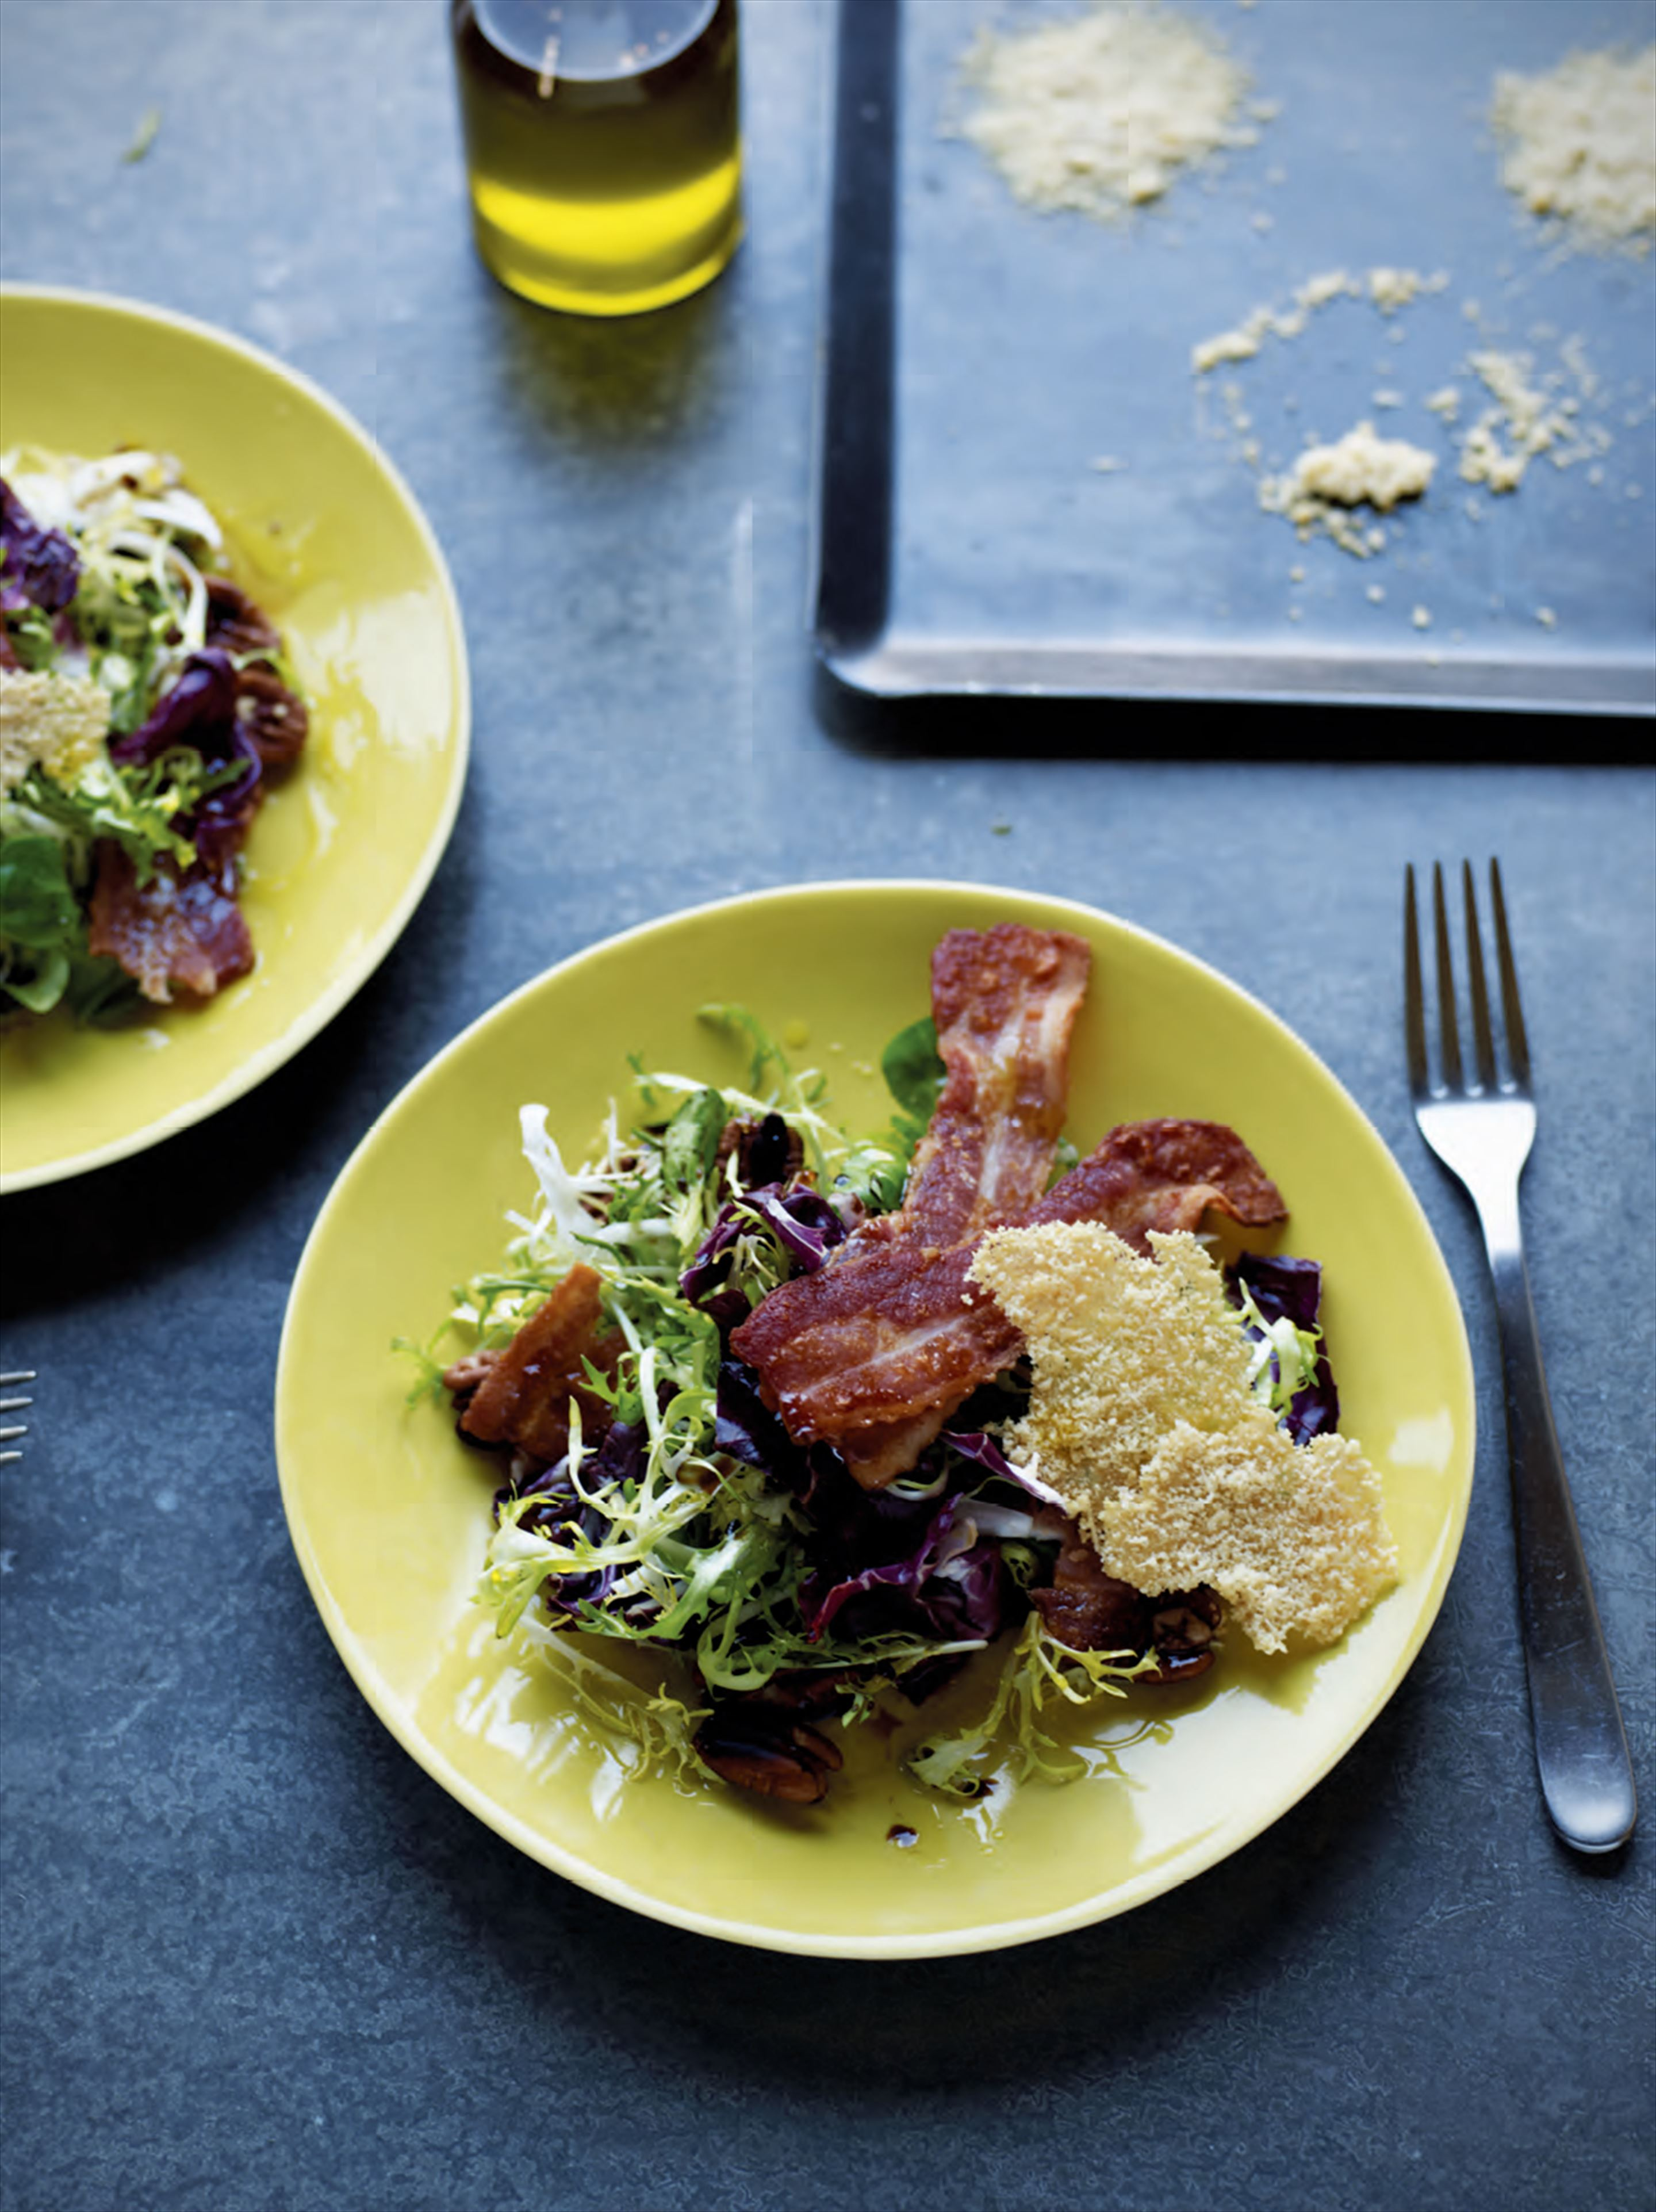 Crispy bacon & pecan salad with parmesan crisps